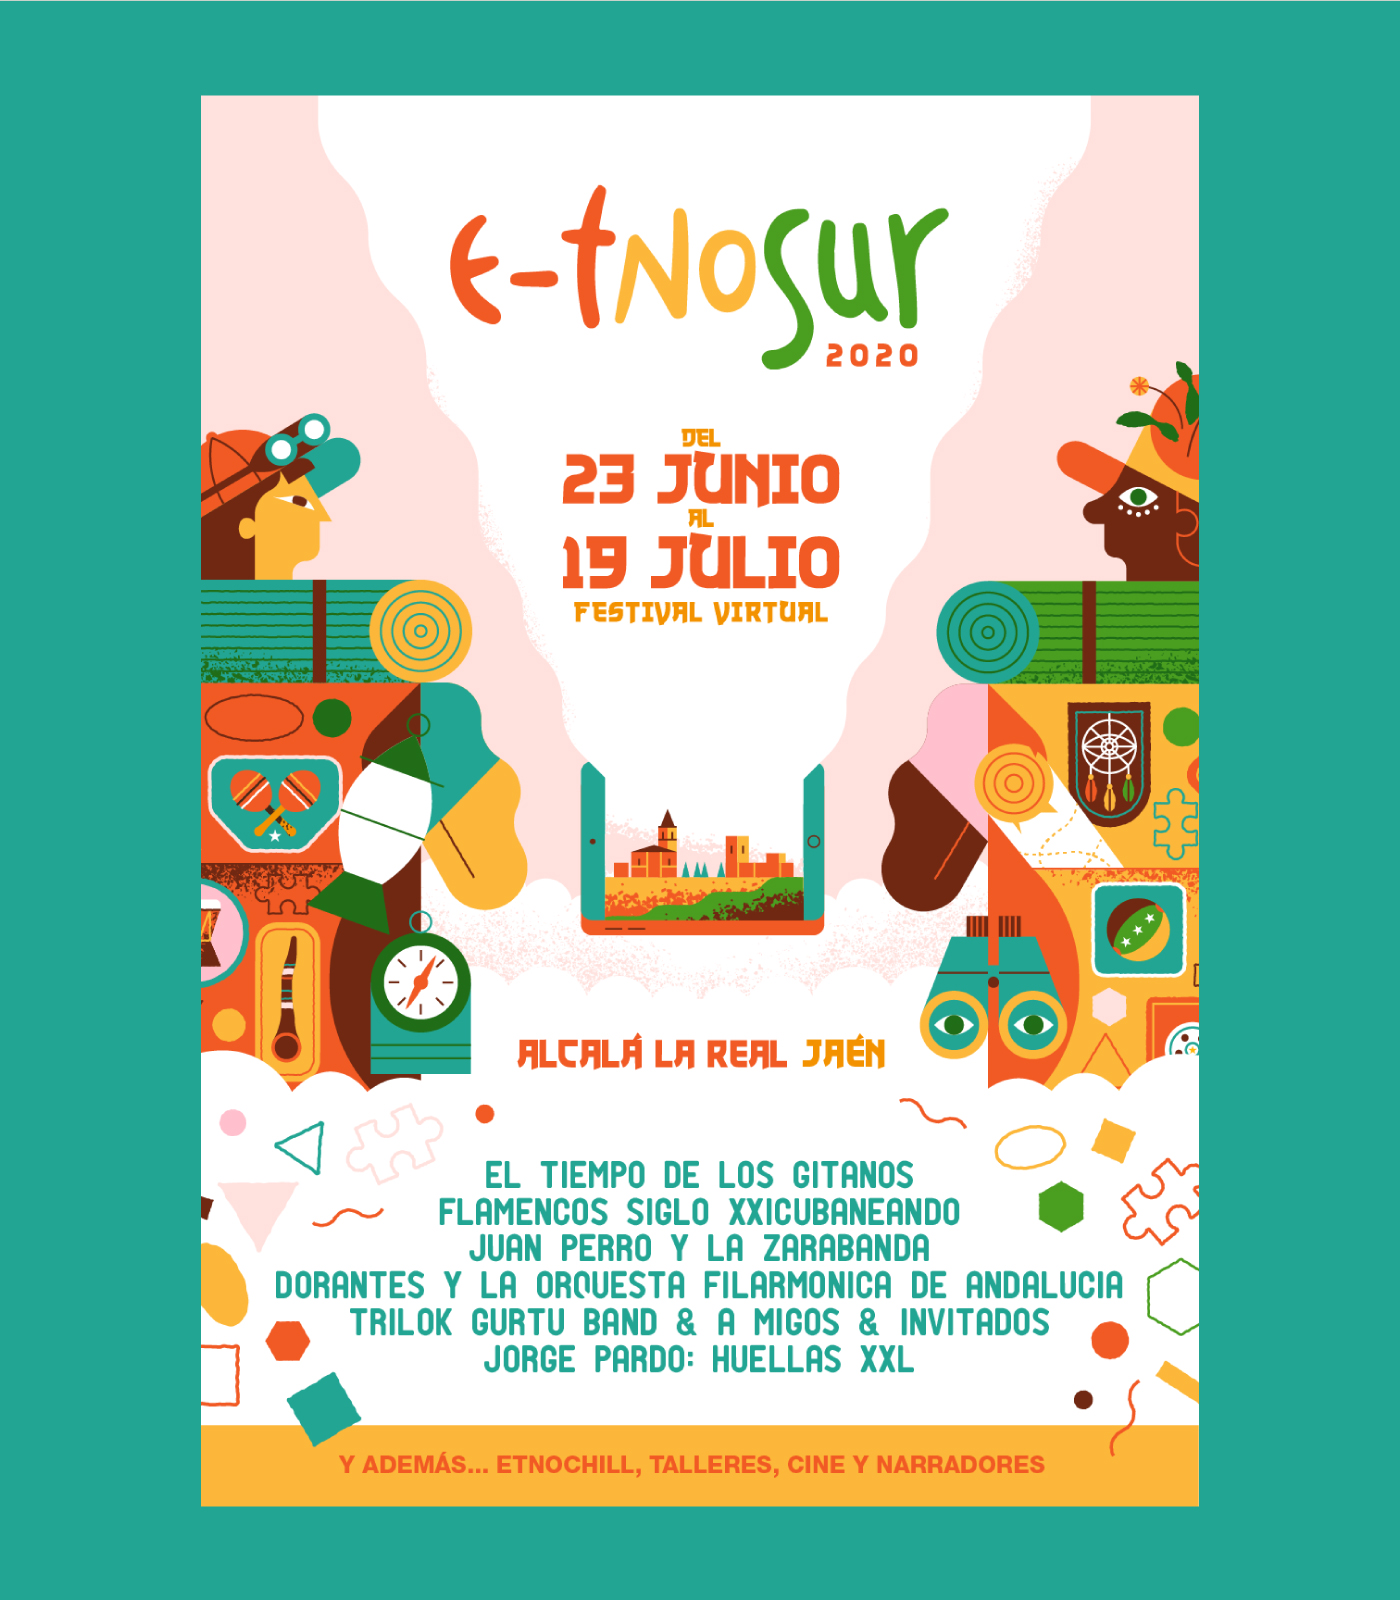 etnosur_2020_music_festival_graphic_design